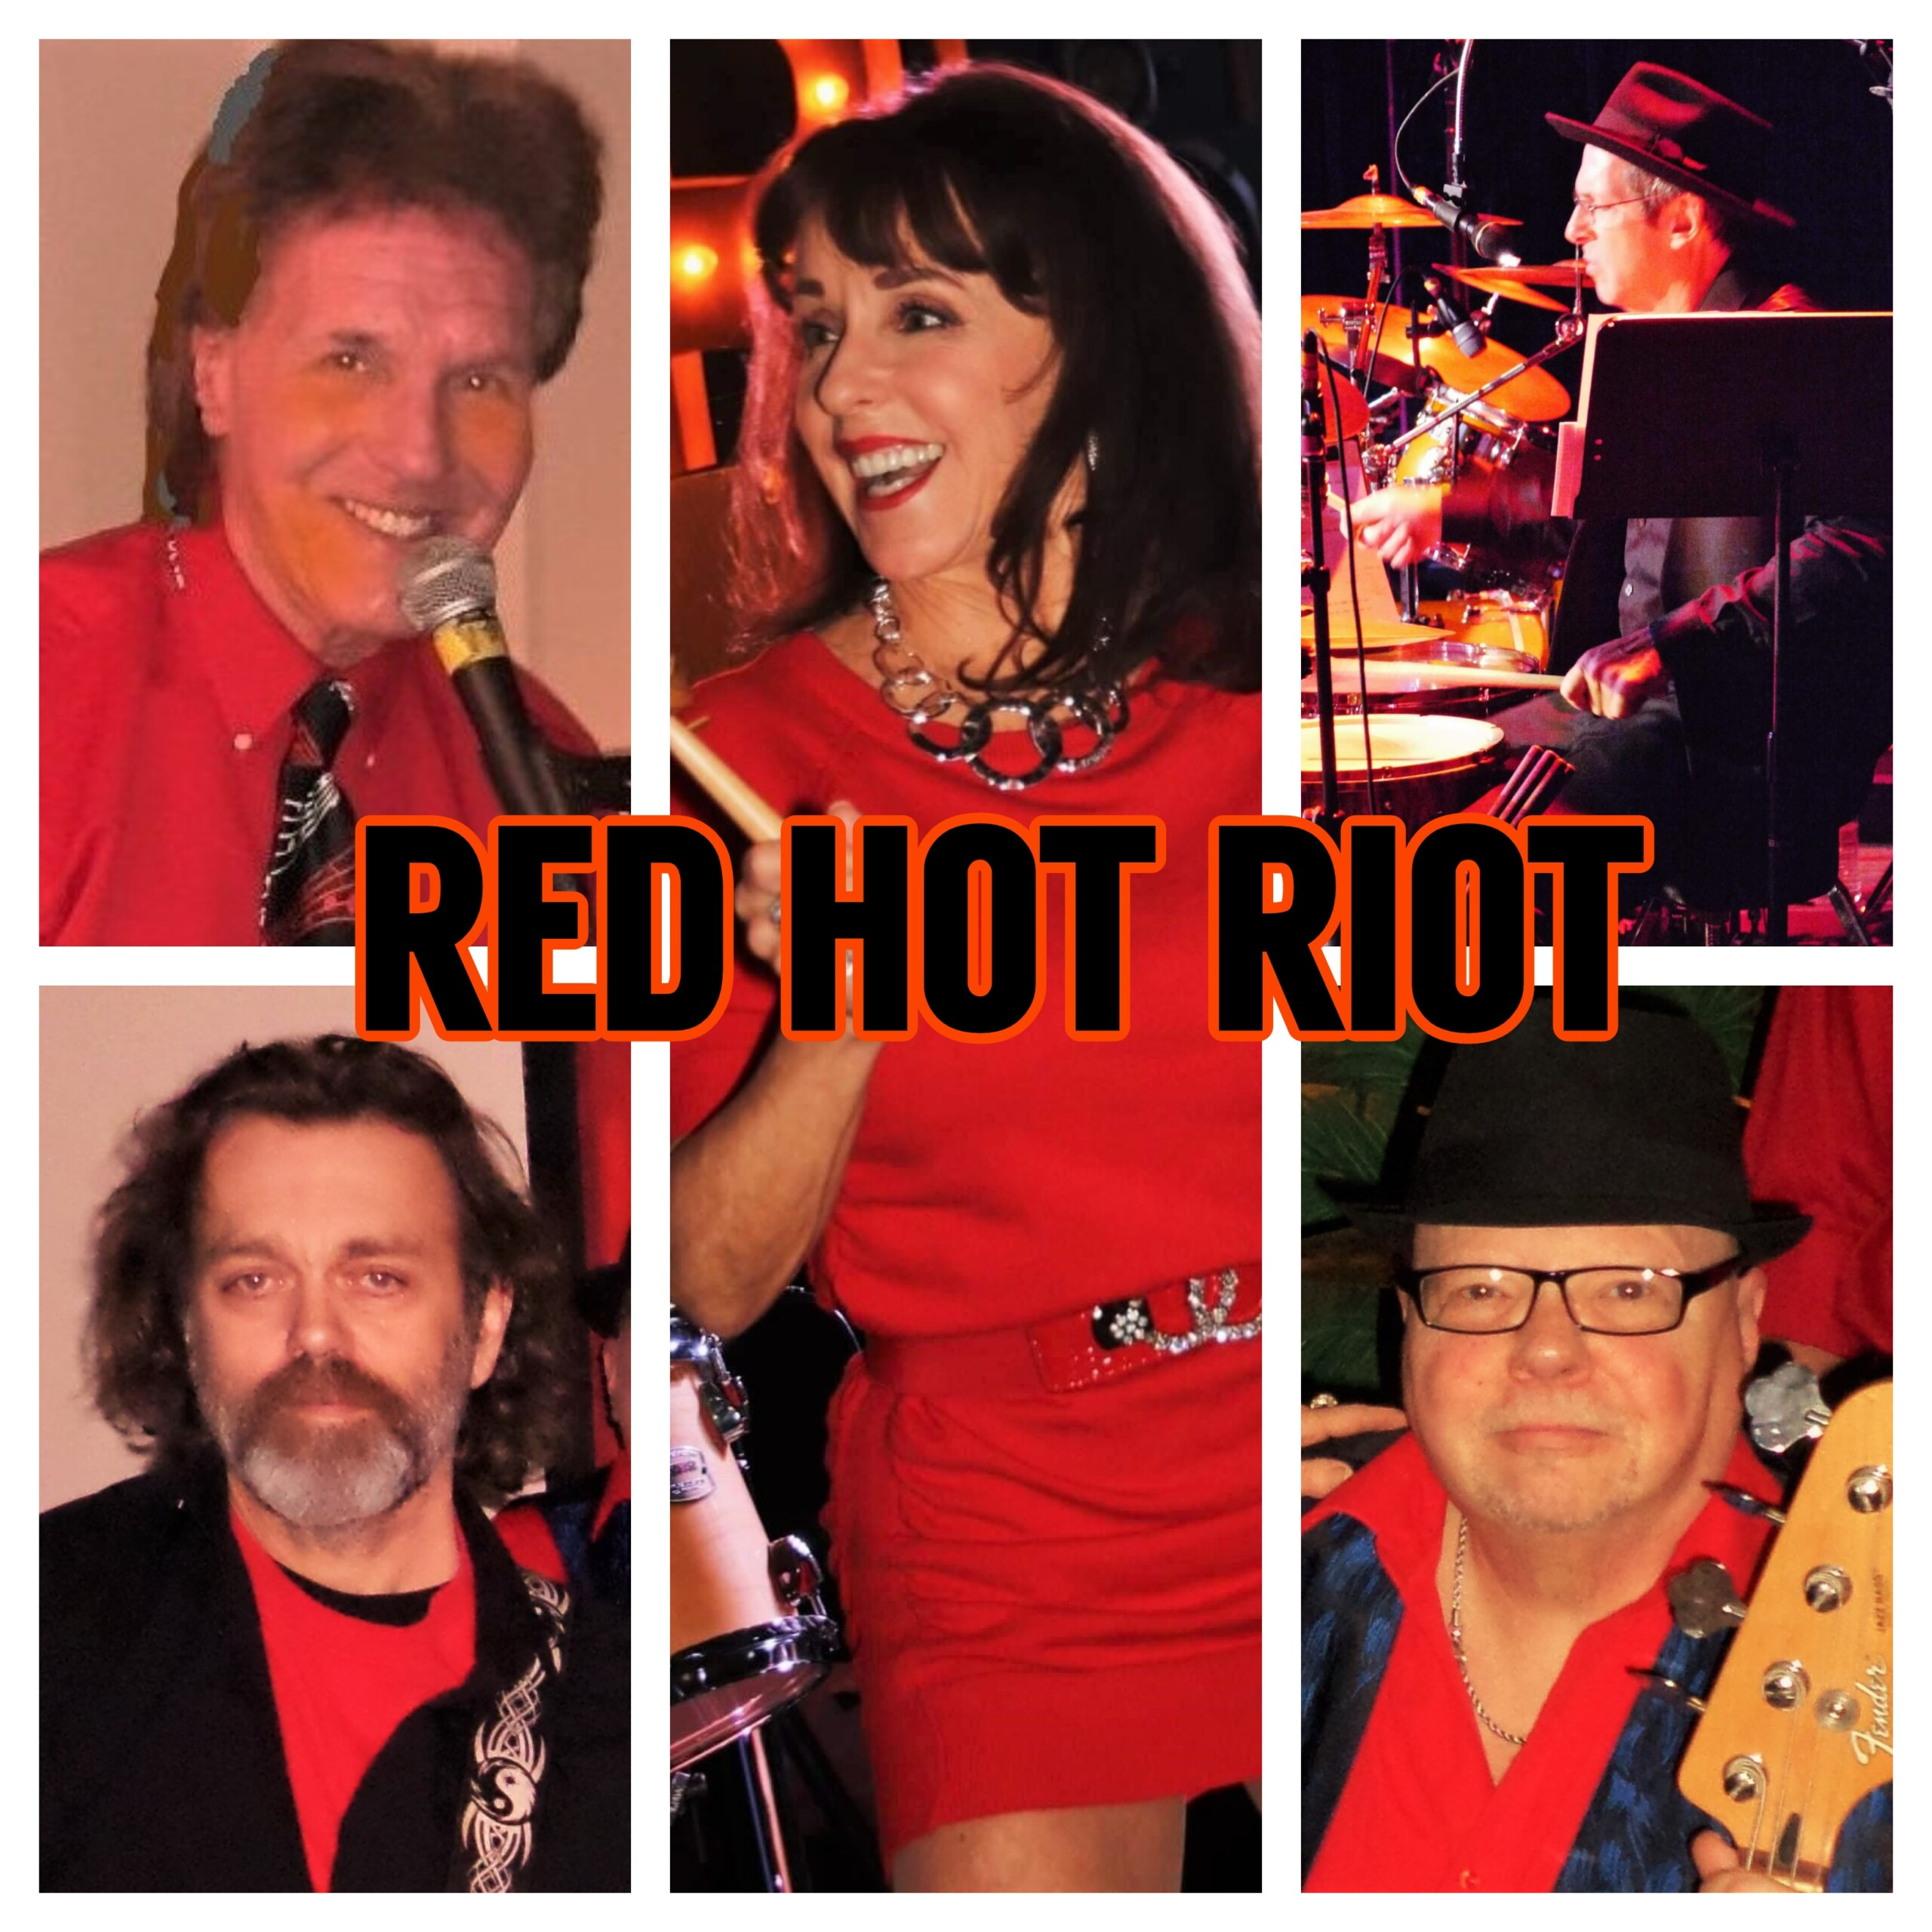 Red Hot Riot Band Members